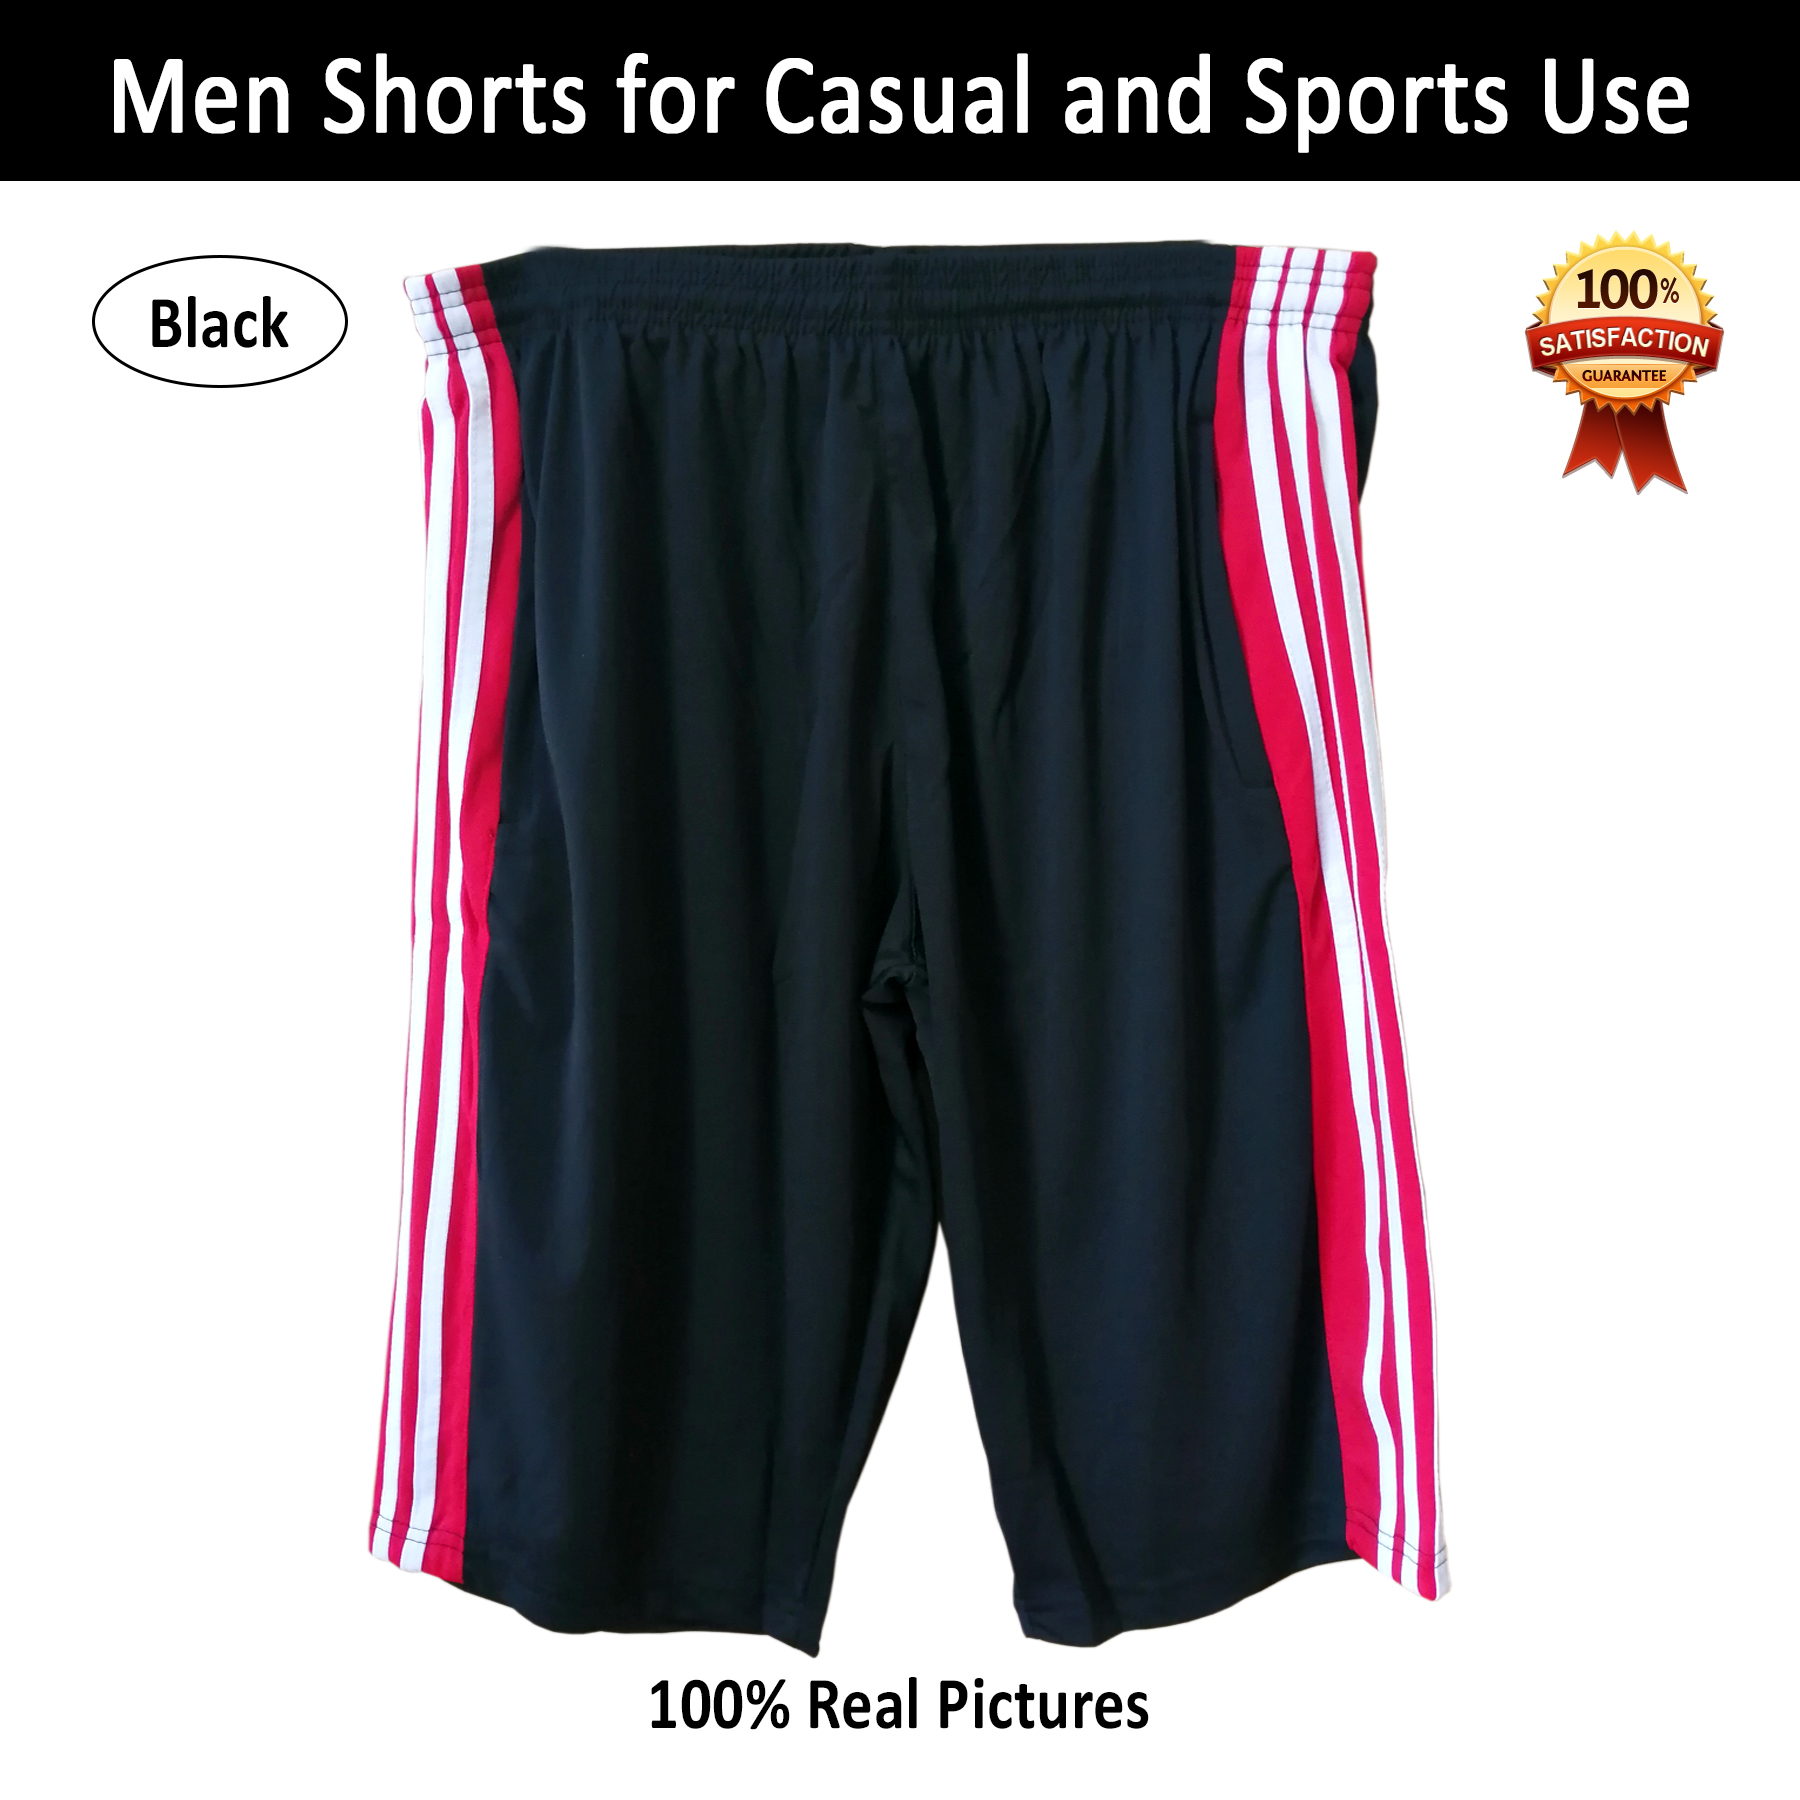 Men's Shorts for Sports Running Wear Night Wear Gym Exercise Short Pants for Sleeping and Casual Use in Black and Blue in M L XL 2XL Sizes